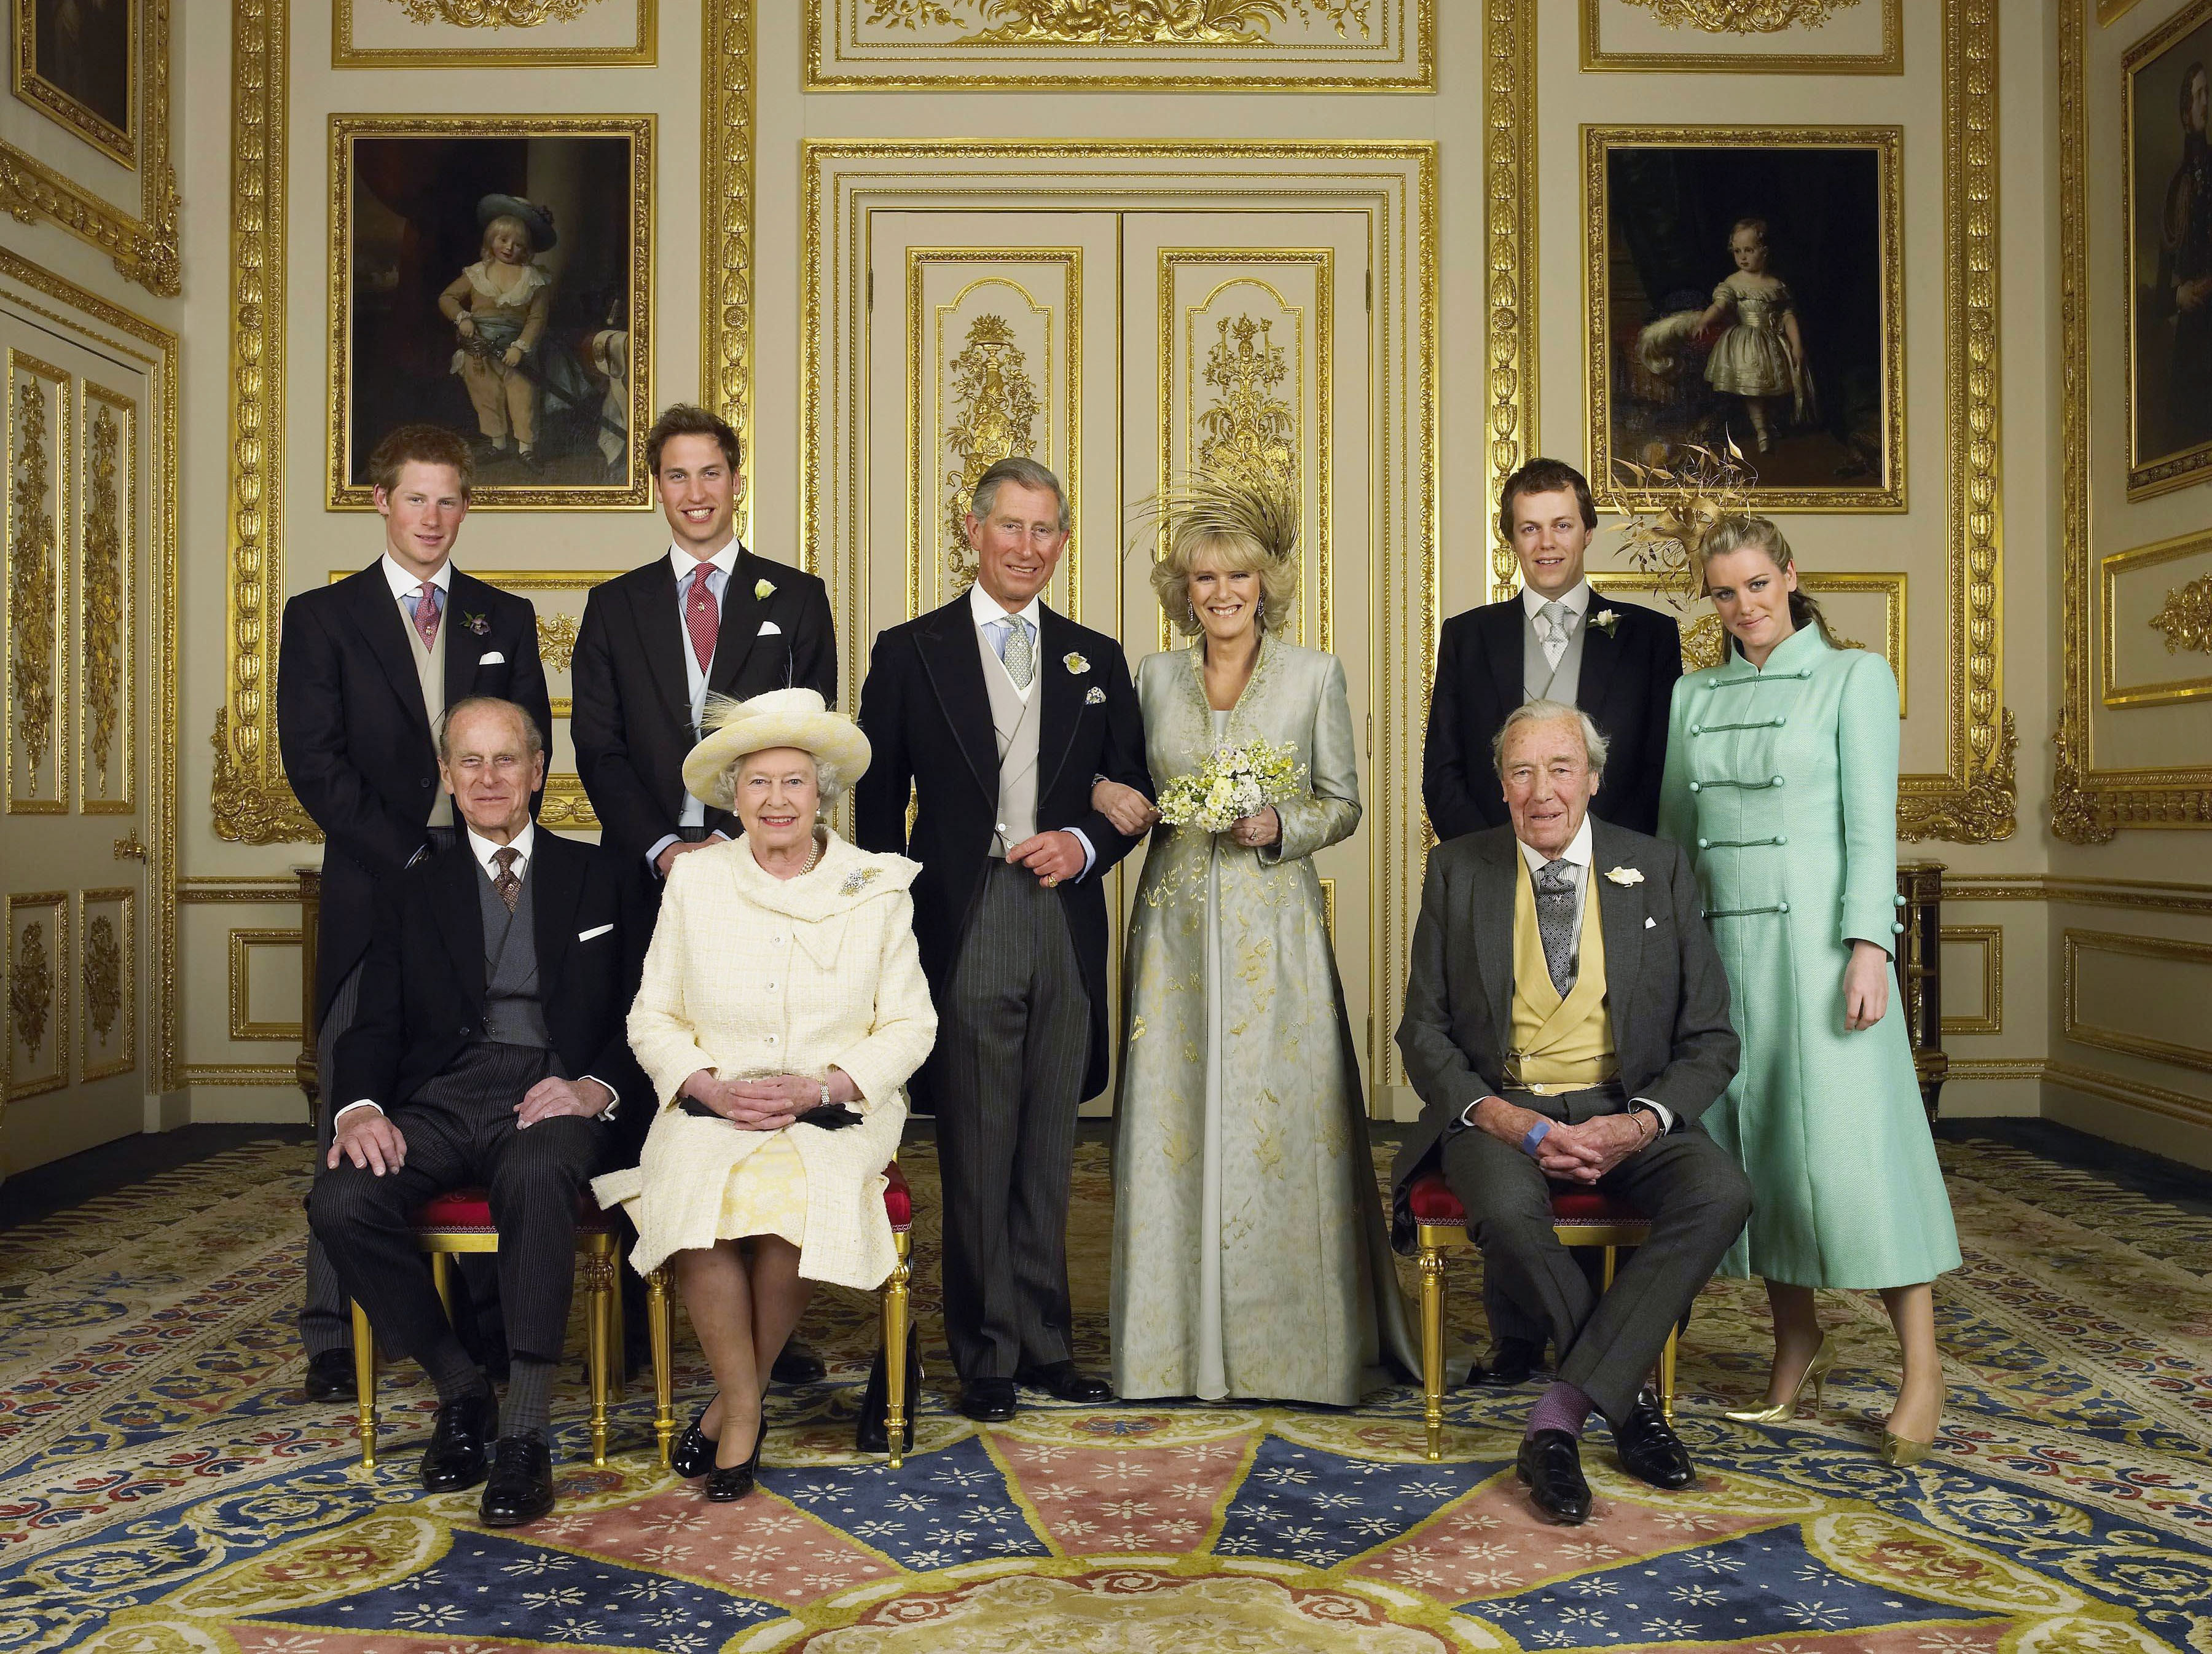 TRH Prince Charles & The Duchess Of Cornwall Attend Blessing At Windsor